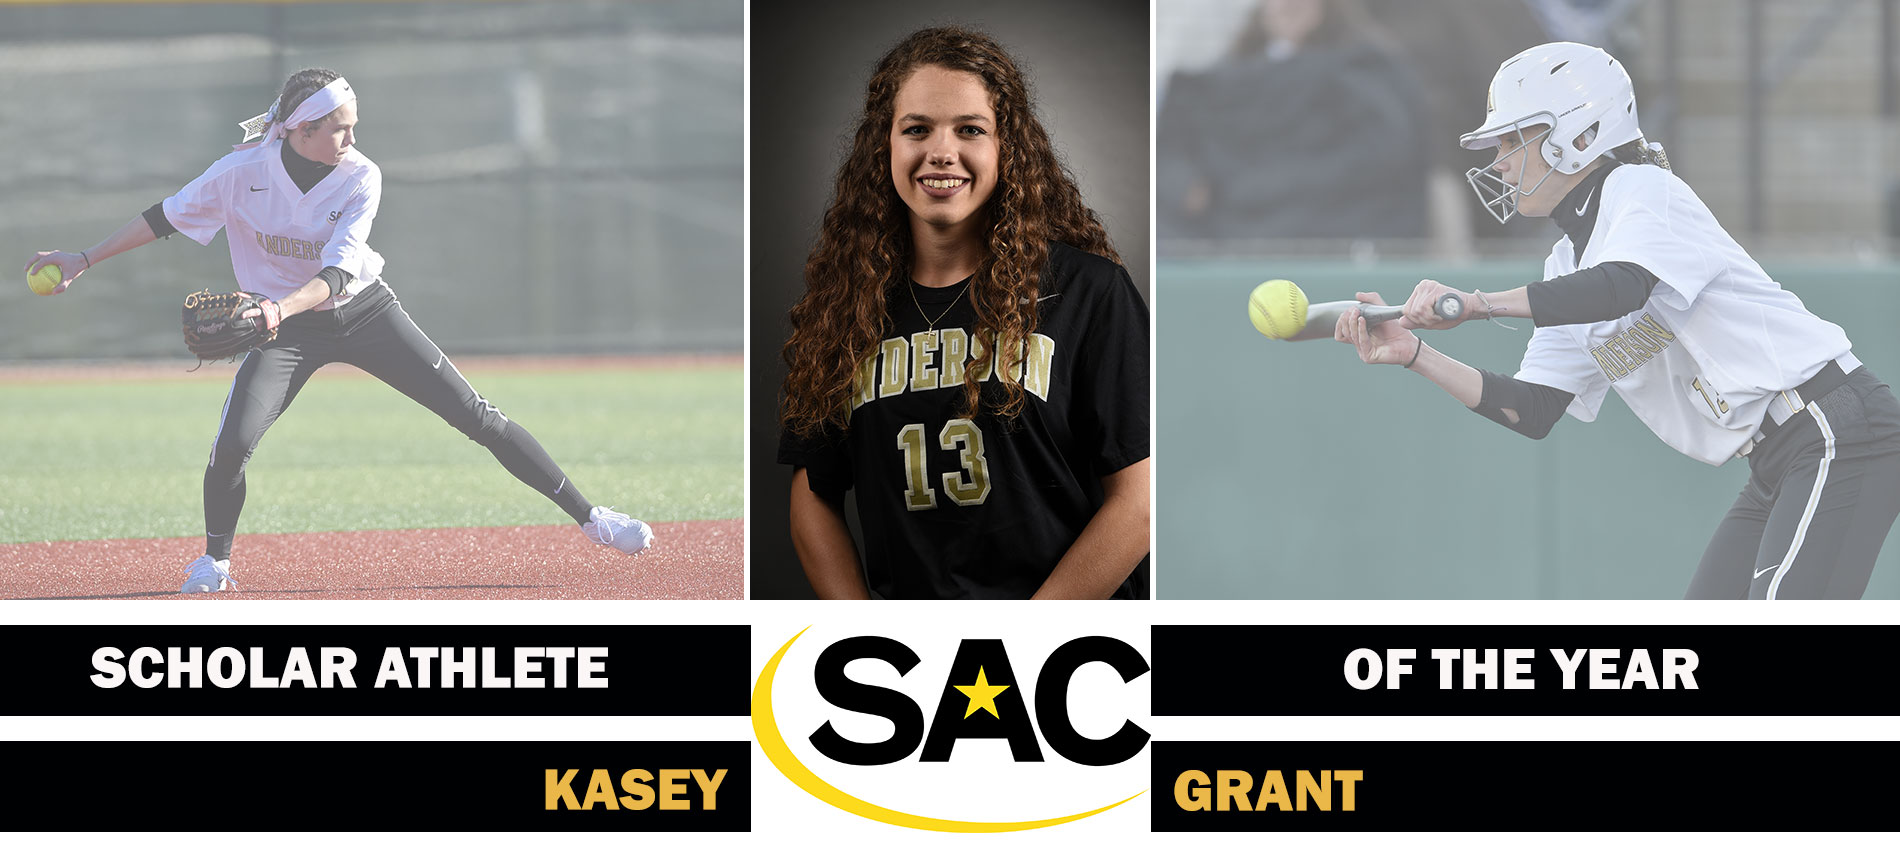 Grant Named South Atlantic Conference Softball Scholar-Athlete of the Year